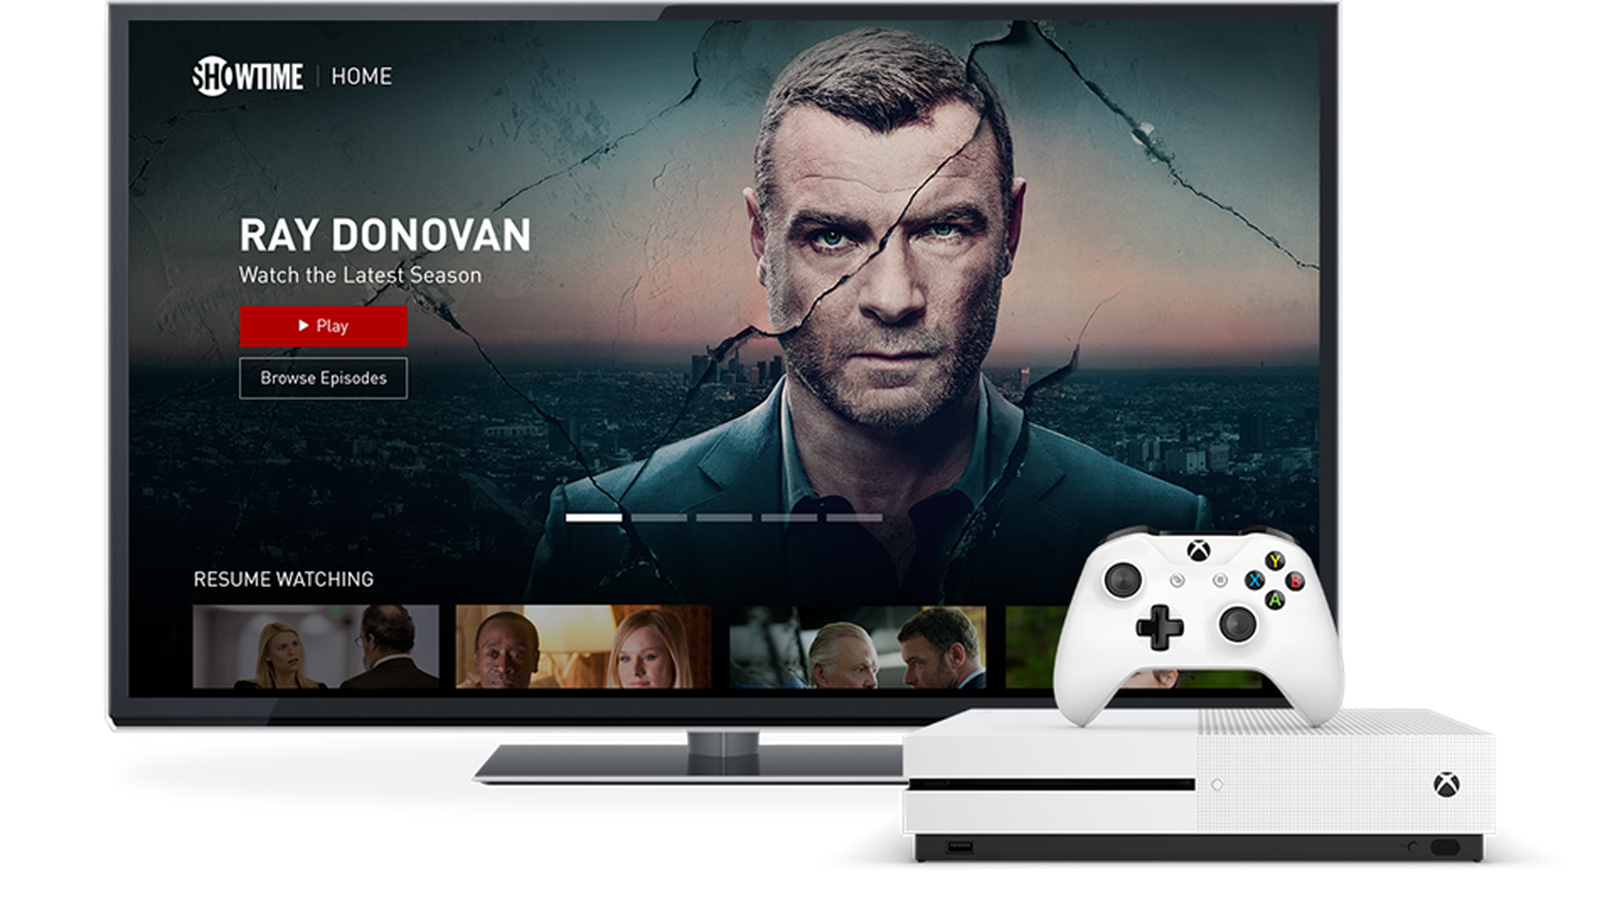 Showtime's Standalone Subscription Service Now has an Xbox One App